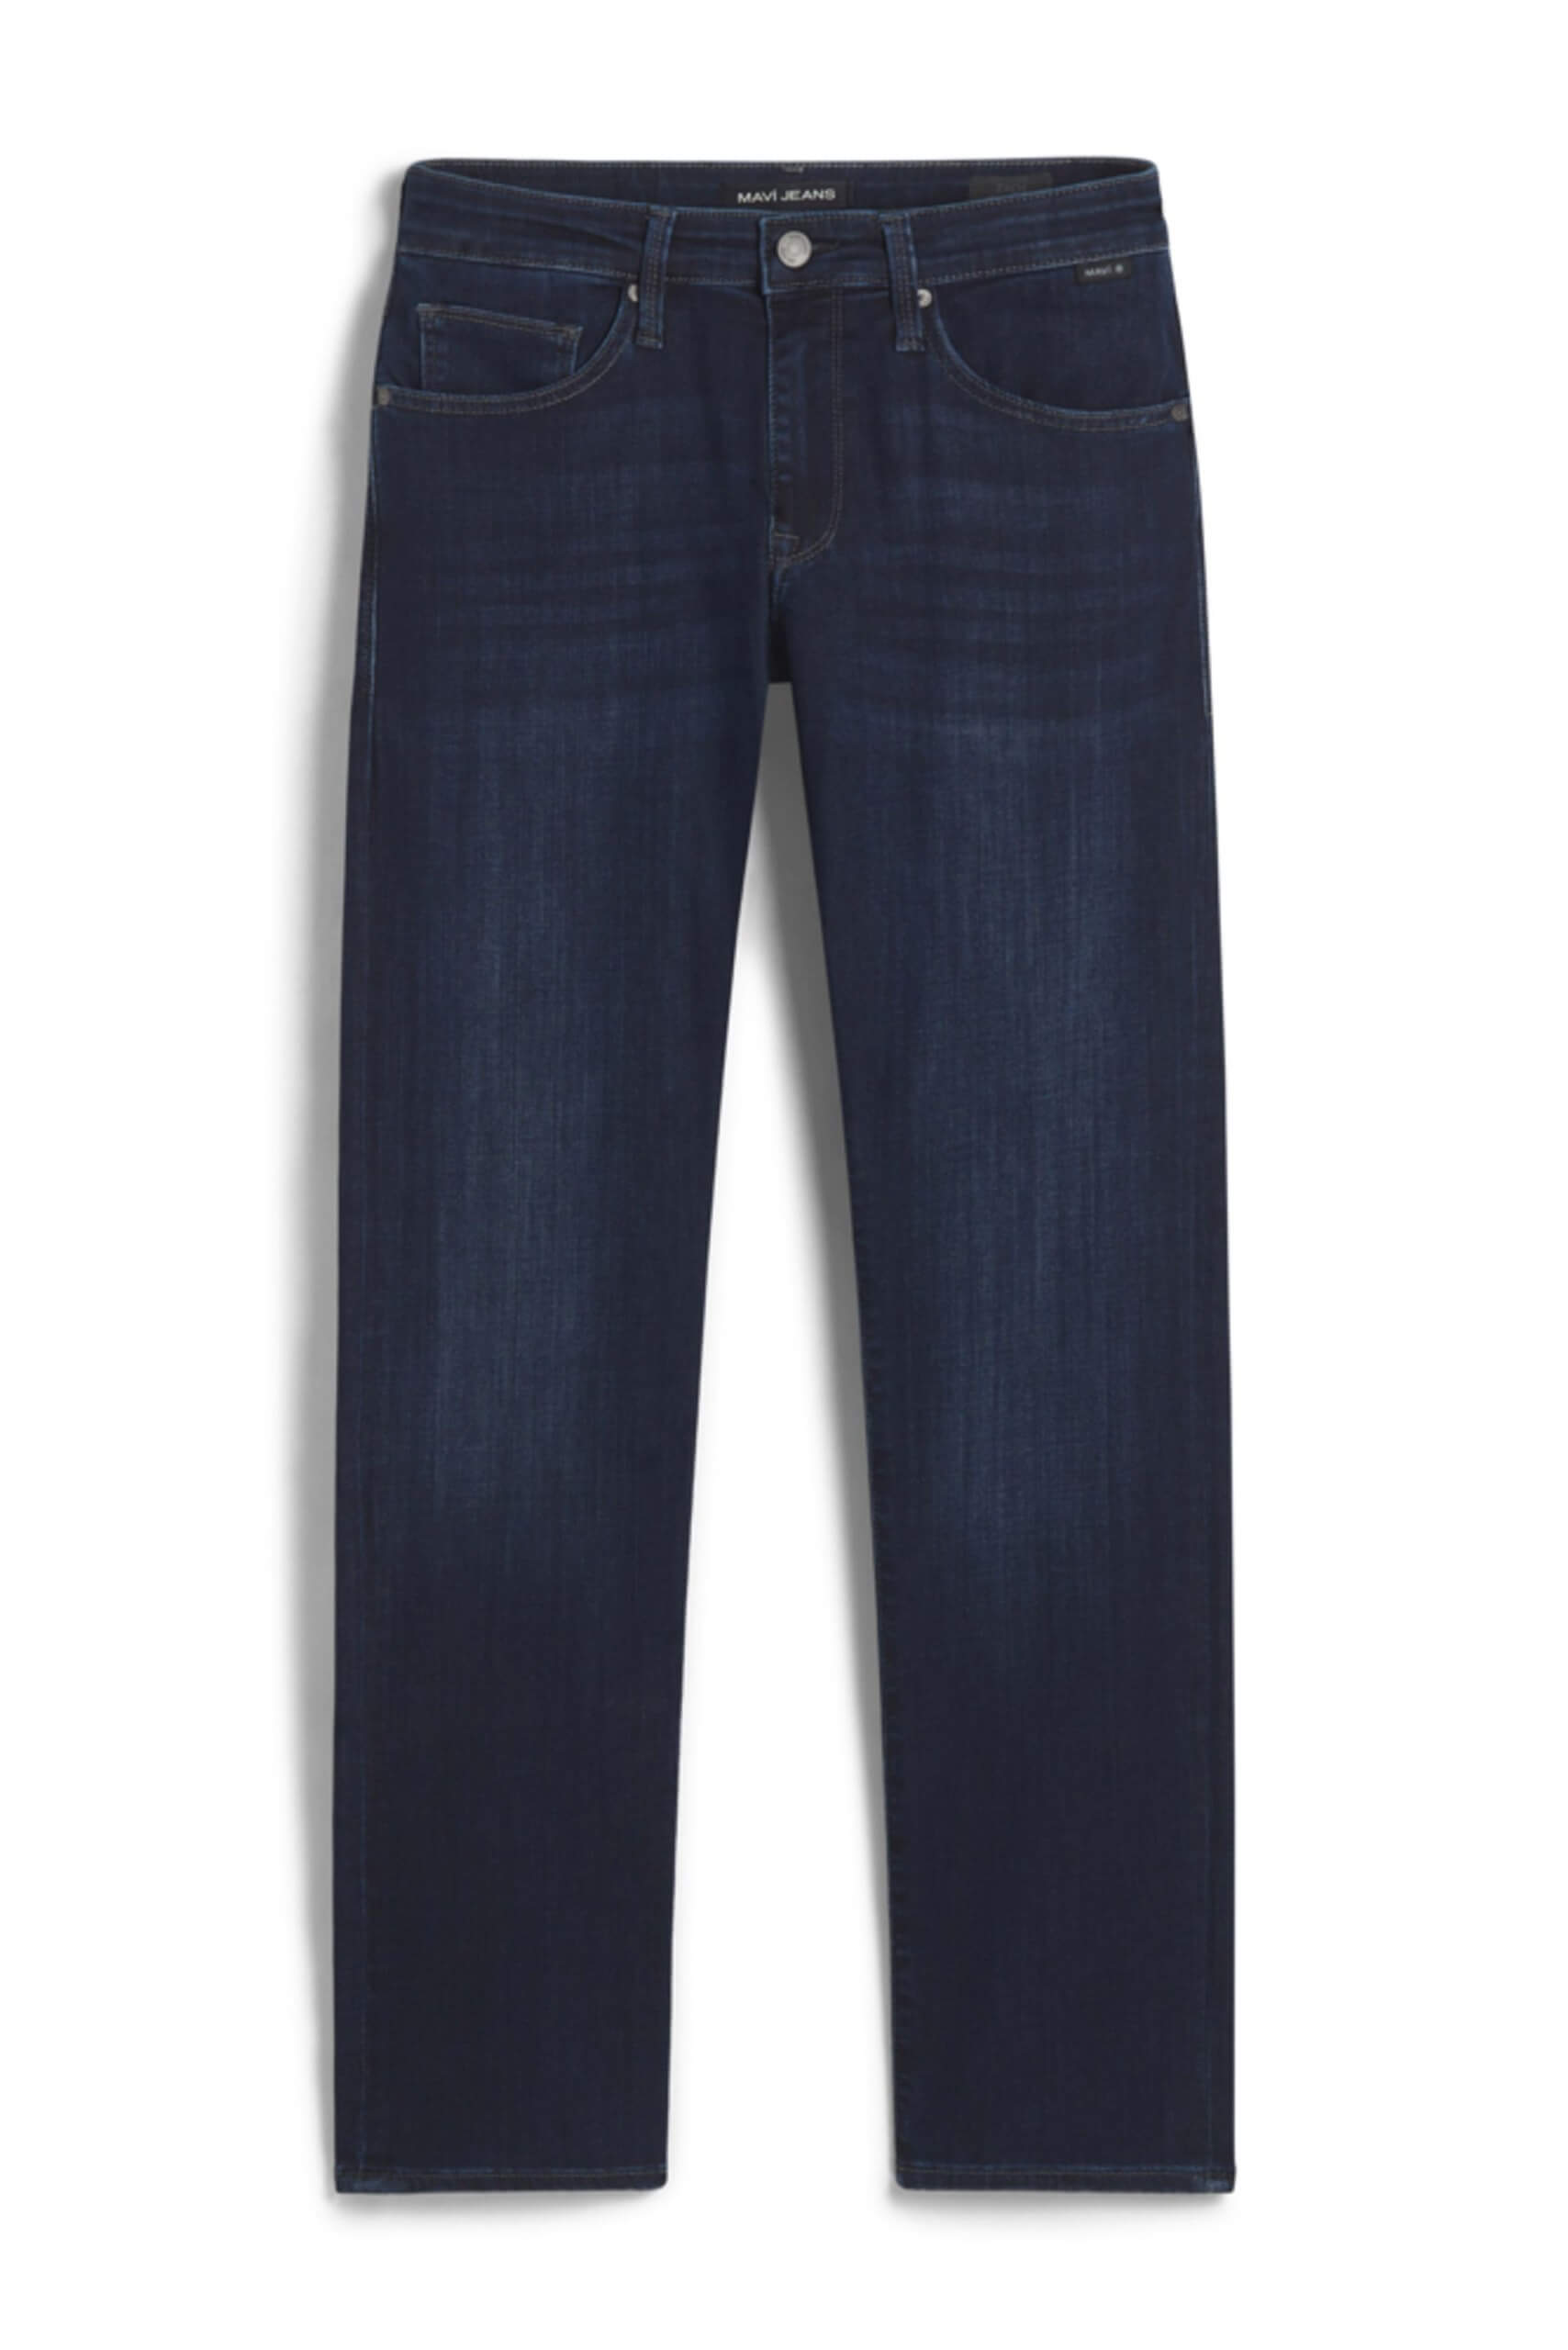 Stitch Fix Men's dark wash straight-leg jeans.